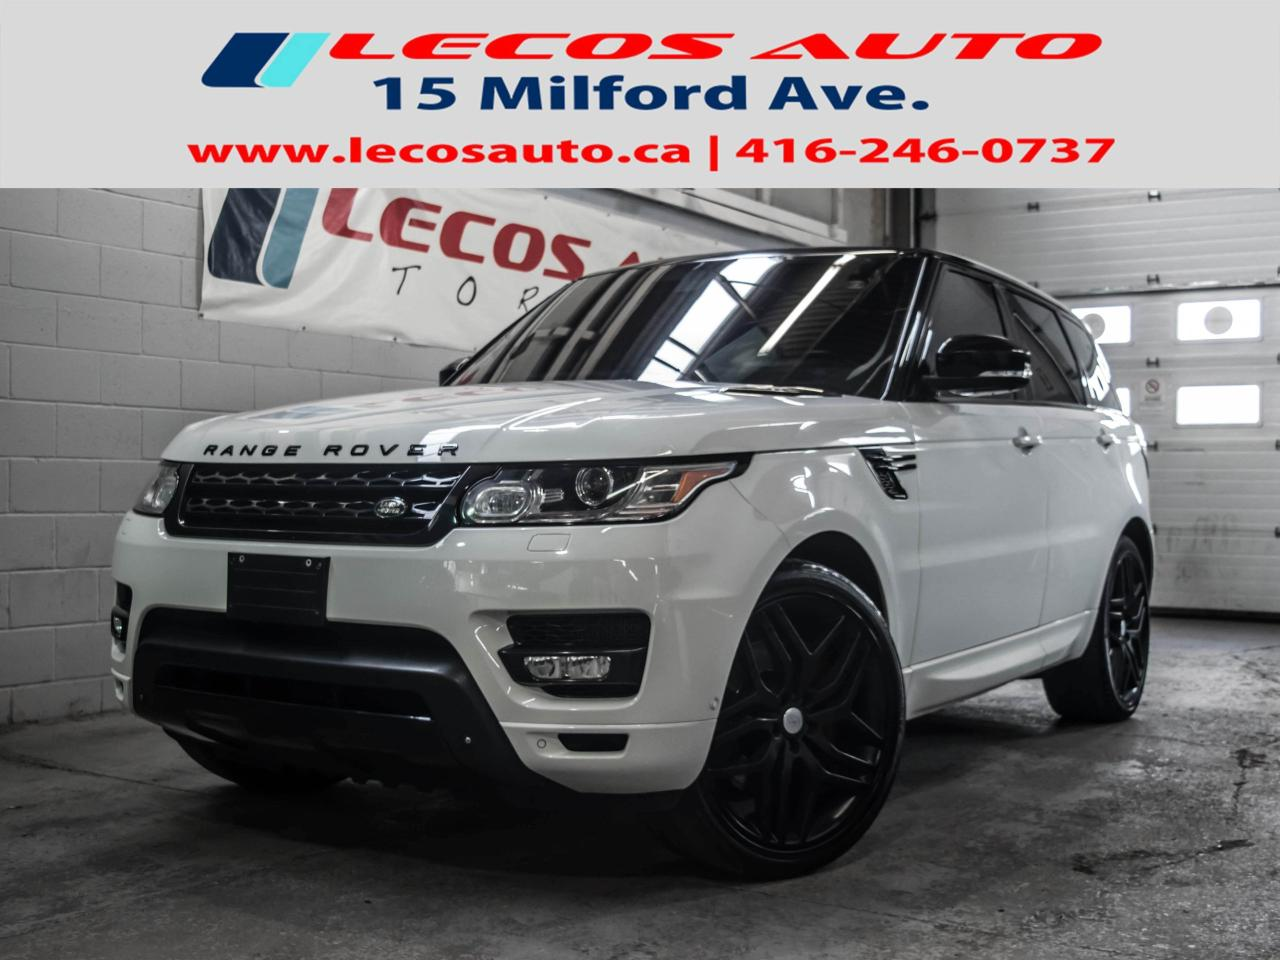 Land Rover Milford >> Used 2014 Land Rover Range Rover Sport V8 Supercharged For Sale In